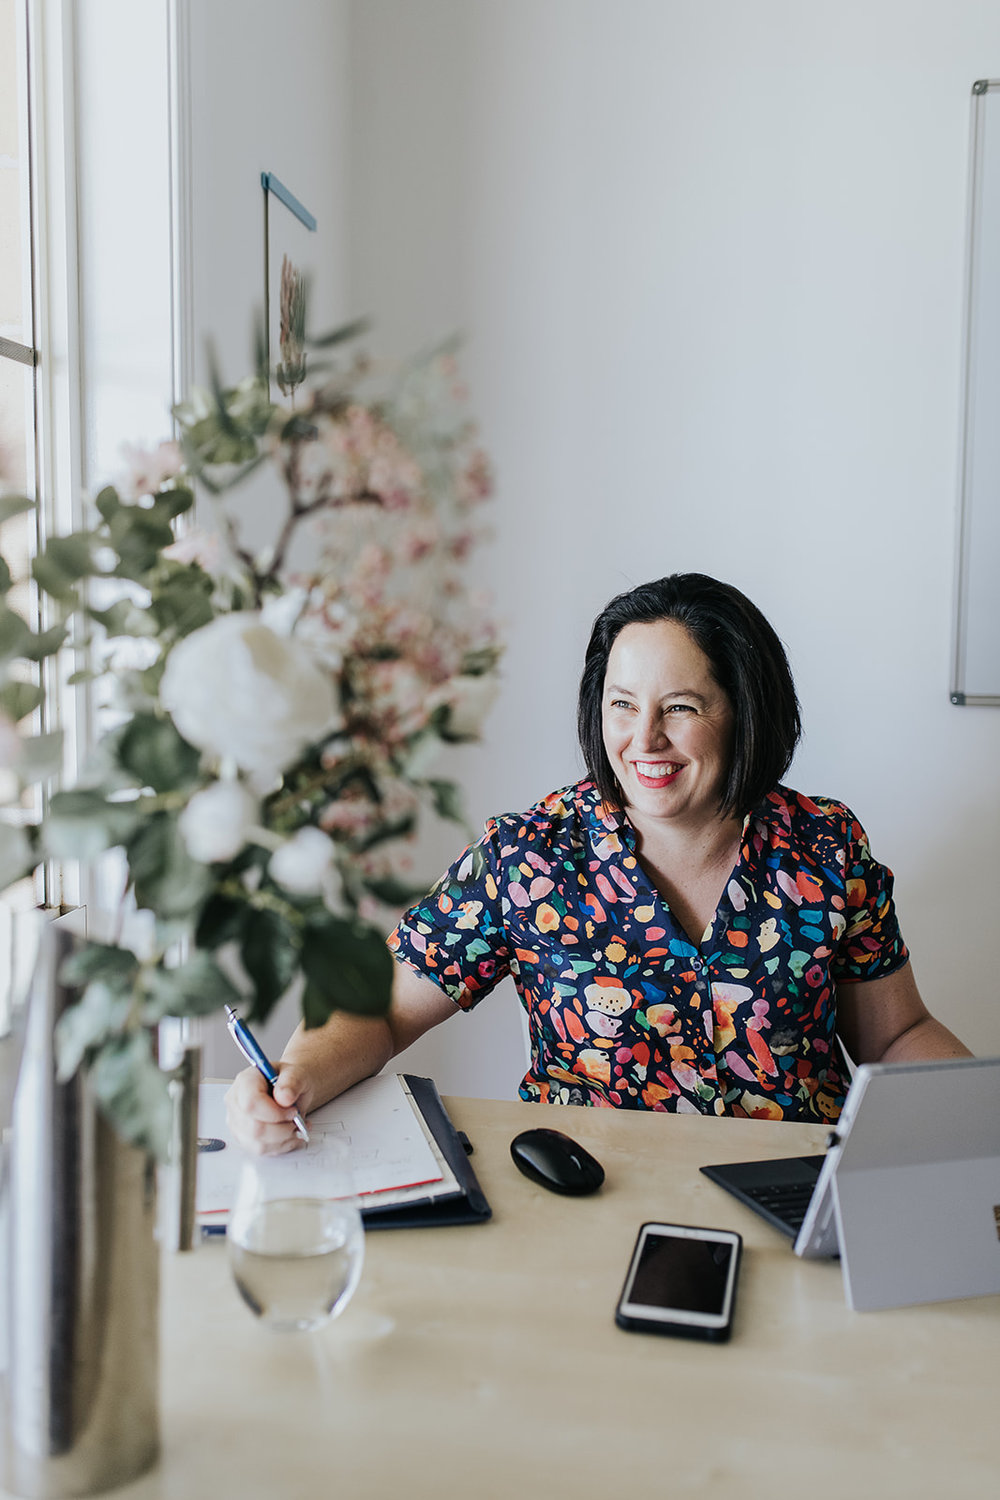 """It has been a revelation having you as part of my team. I feel so confident in my clothes and actually enjoy getting dressed in the morning! A big change. It is awesome knowing you are there to support me when I need to make styling decisions.""  Nicky Grummitt, Grevillea Law"